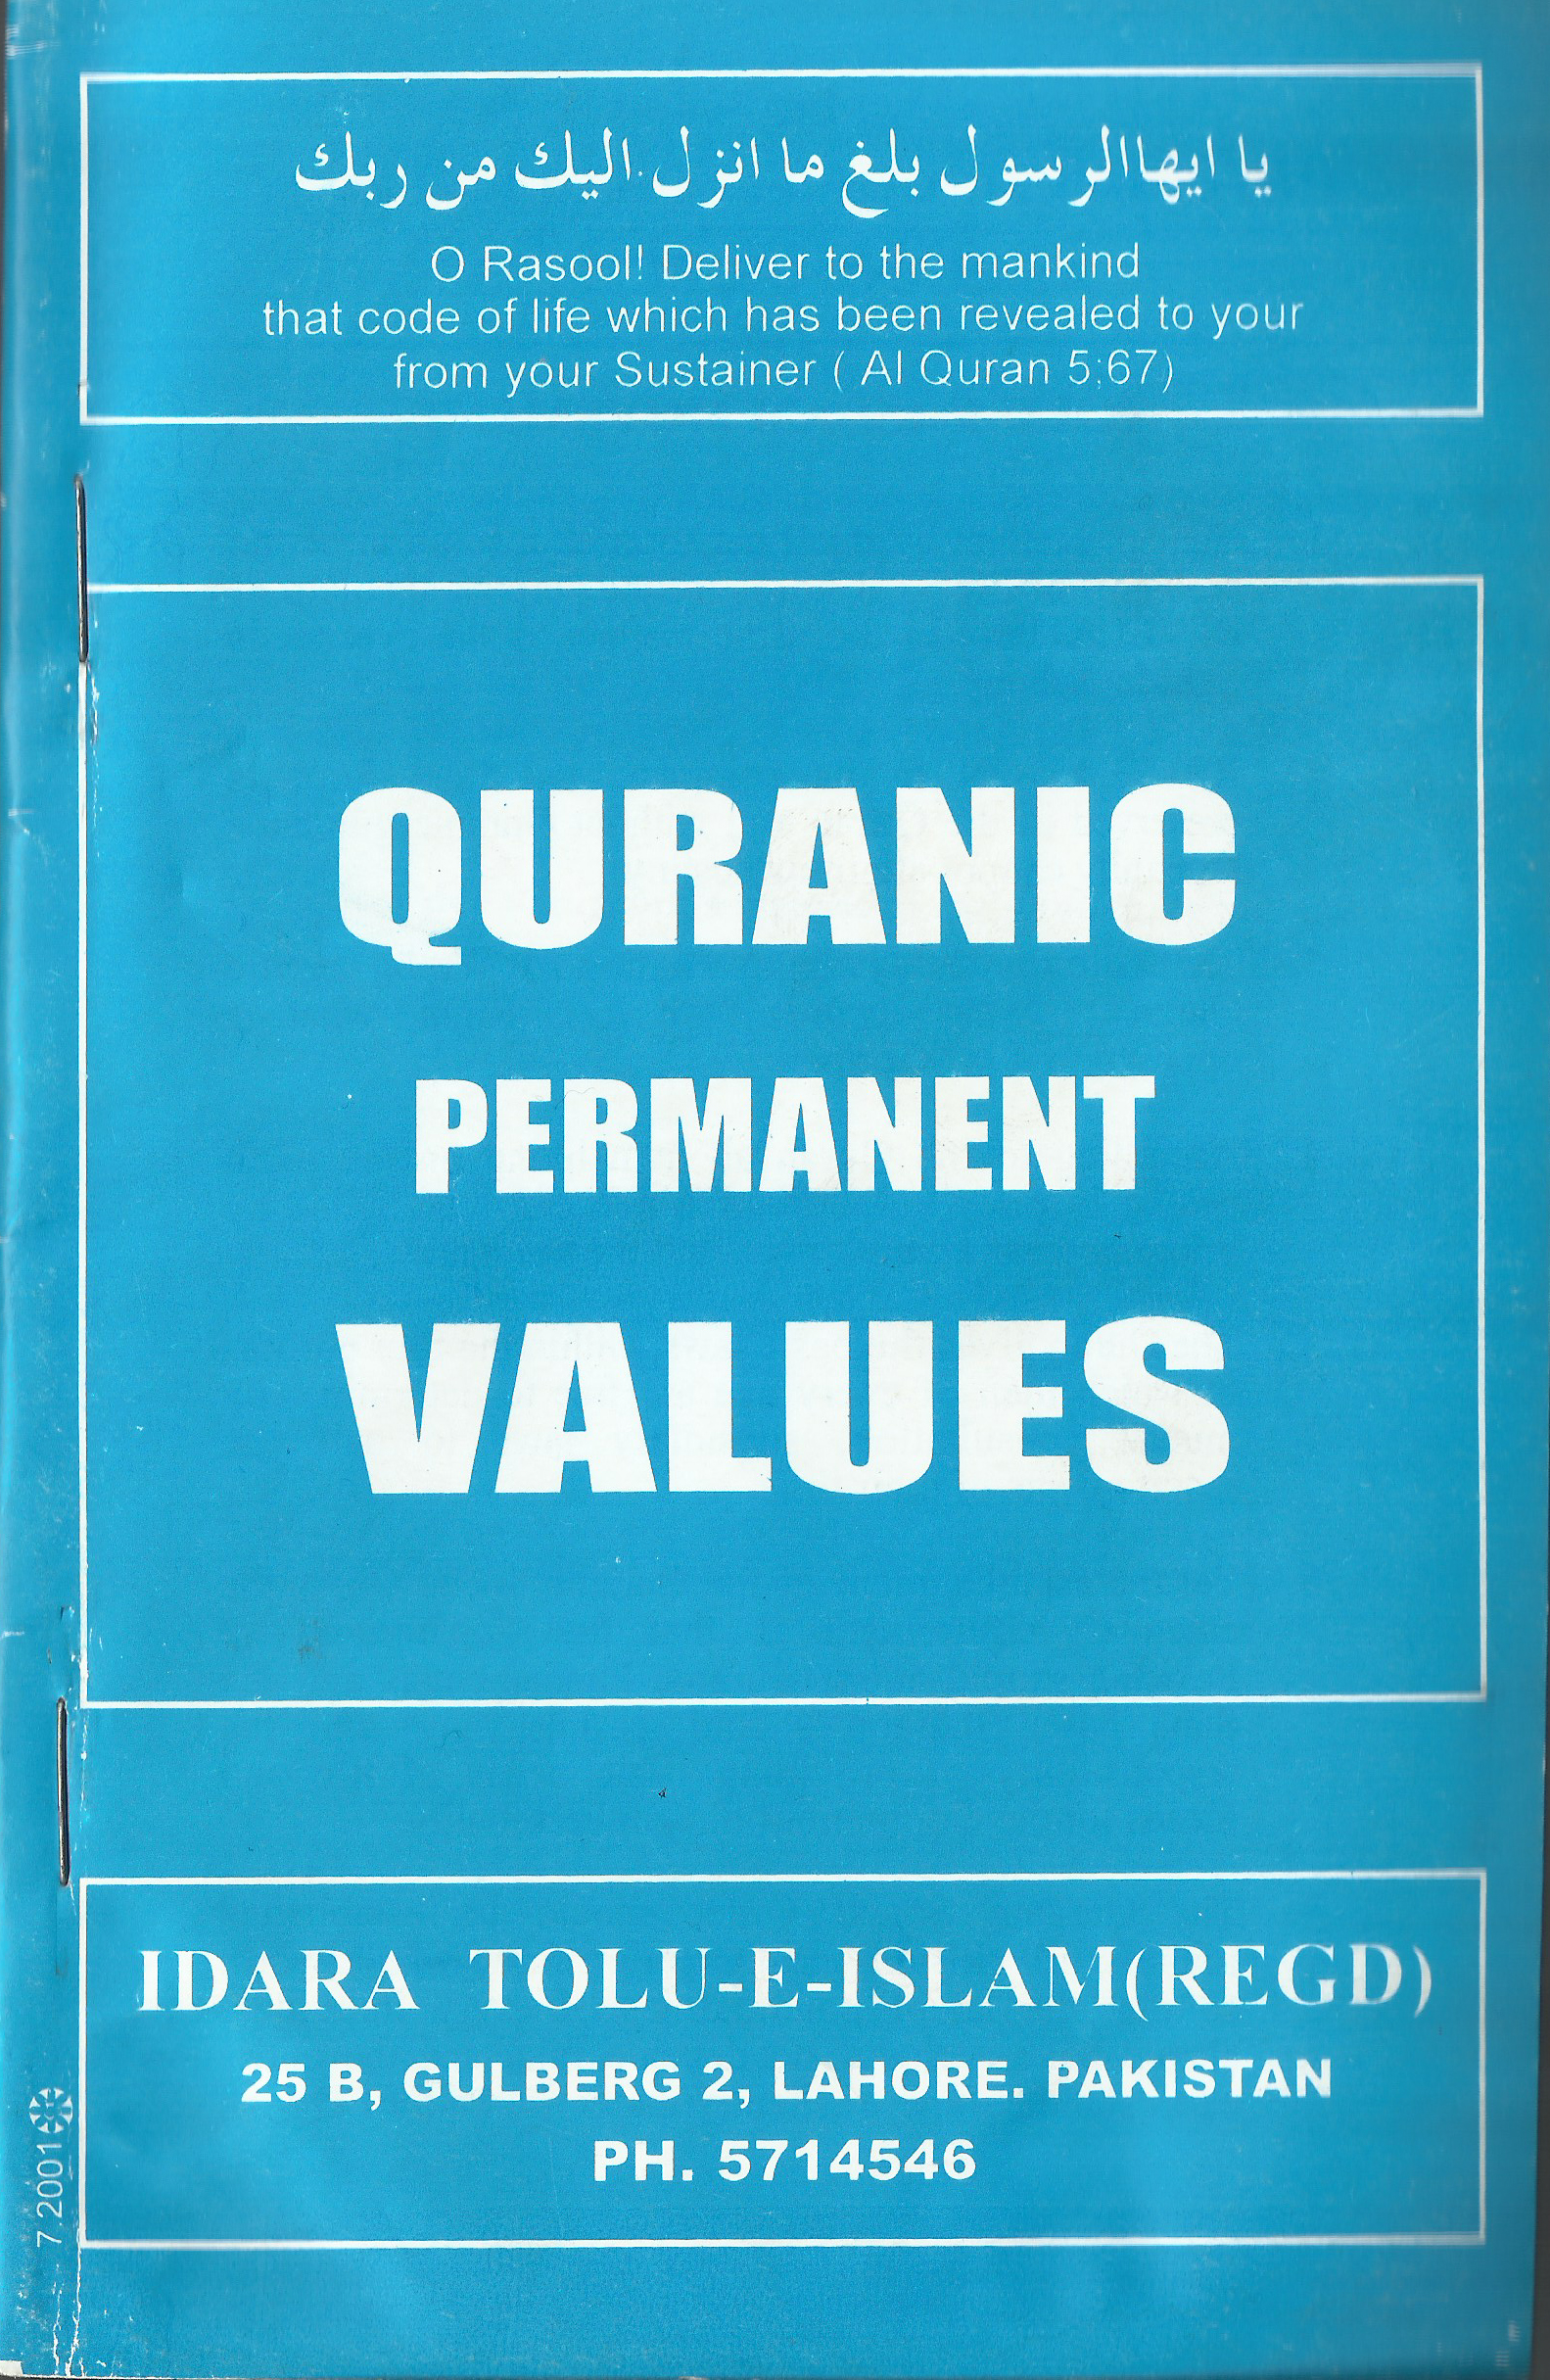 Quranic-permanent-values